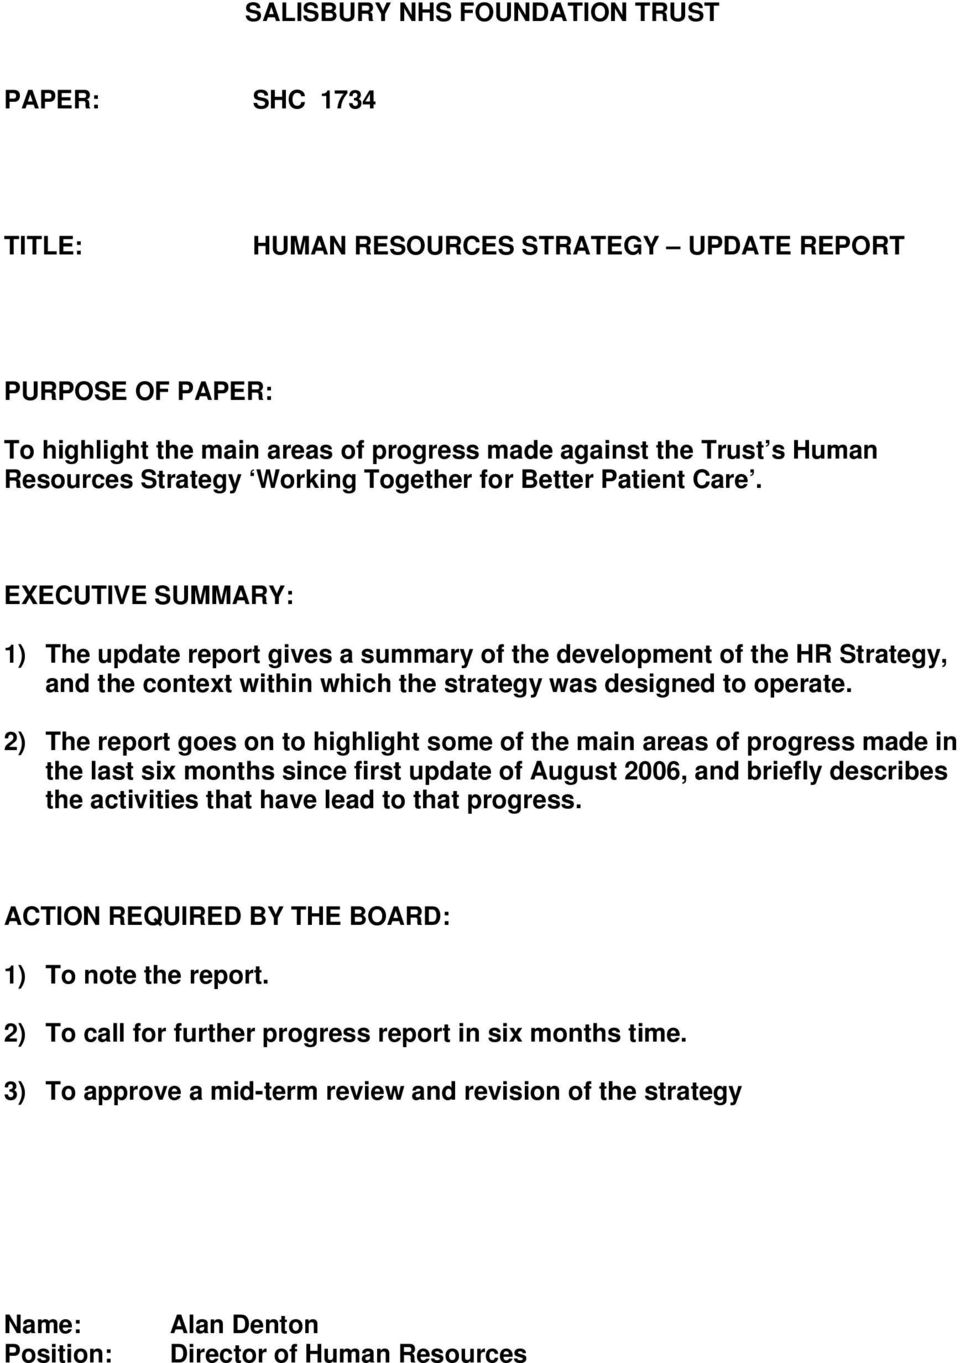 EXECUTIVE SUMMARY: 1) The update report gives a summary of the development of the HR Strategy, and the context within which the strategy was designed to operate.